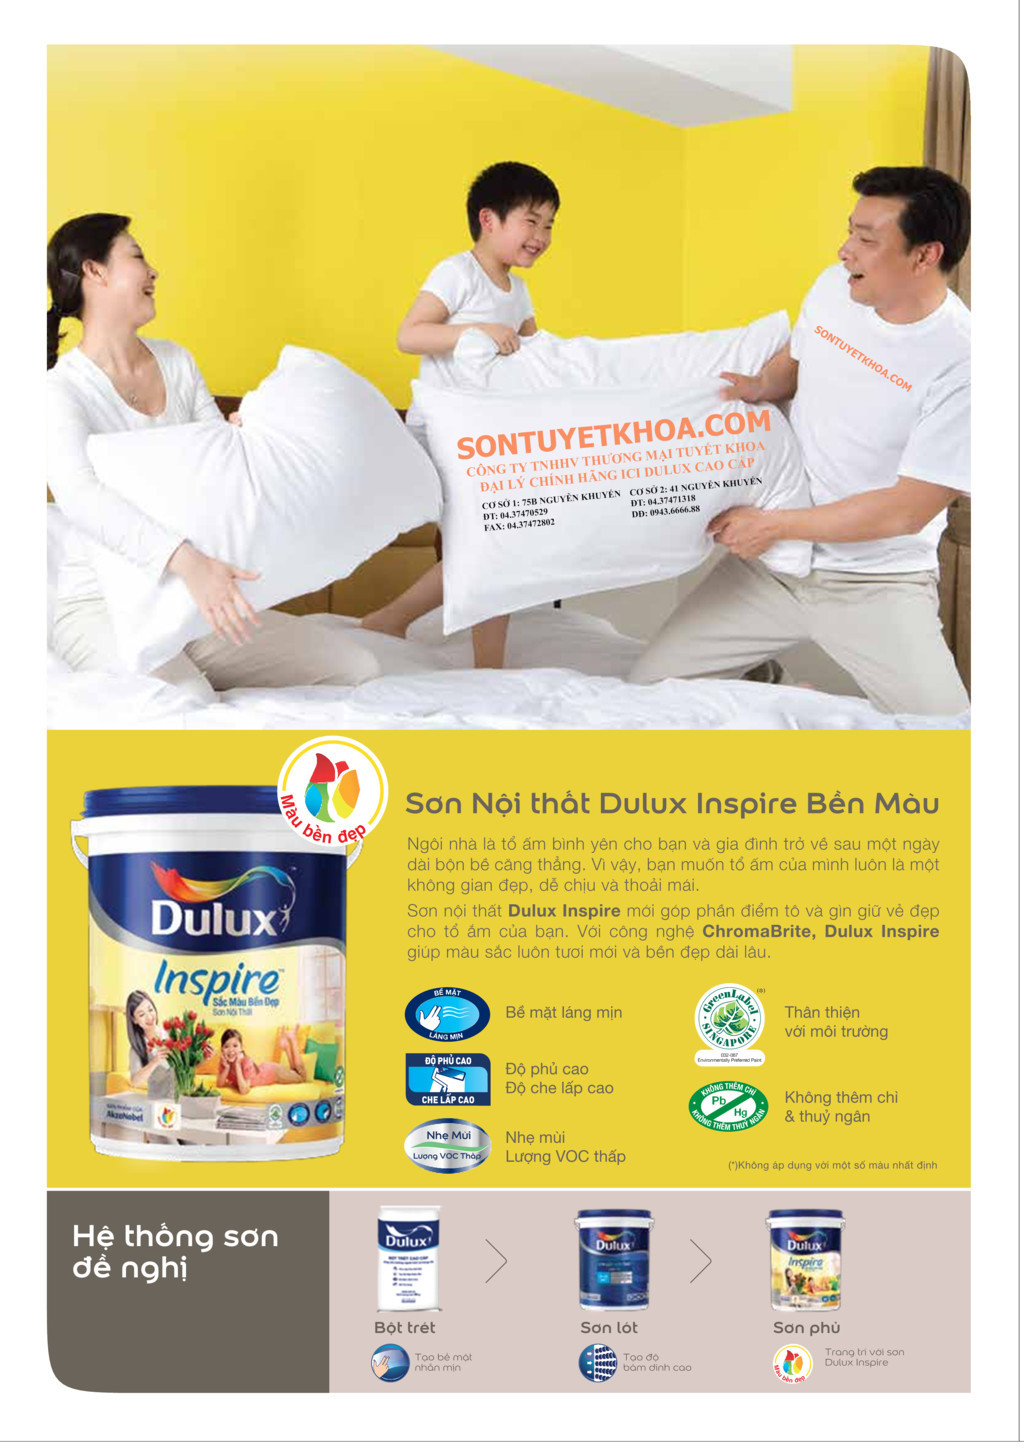 bang-mau-son-noi-that-cao-cap-dulux-inspire-3 -son-dulux